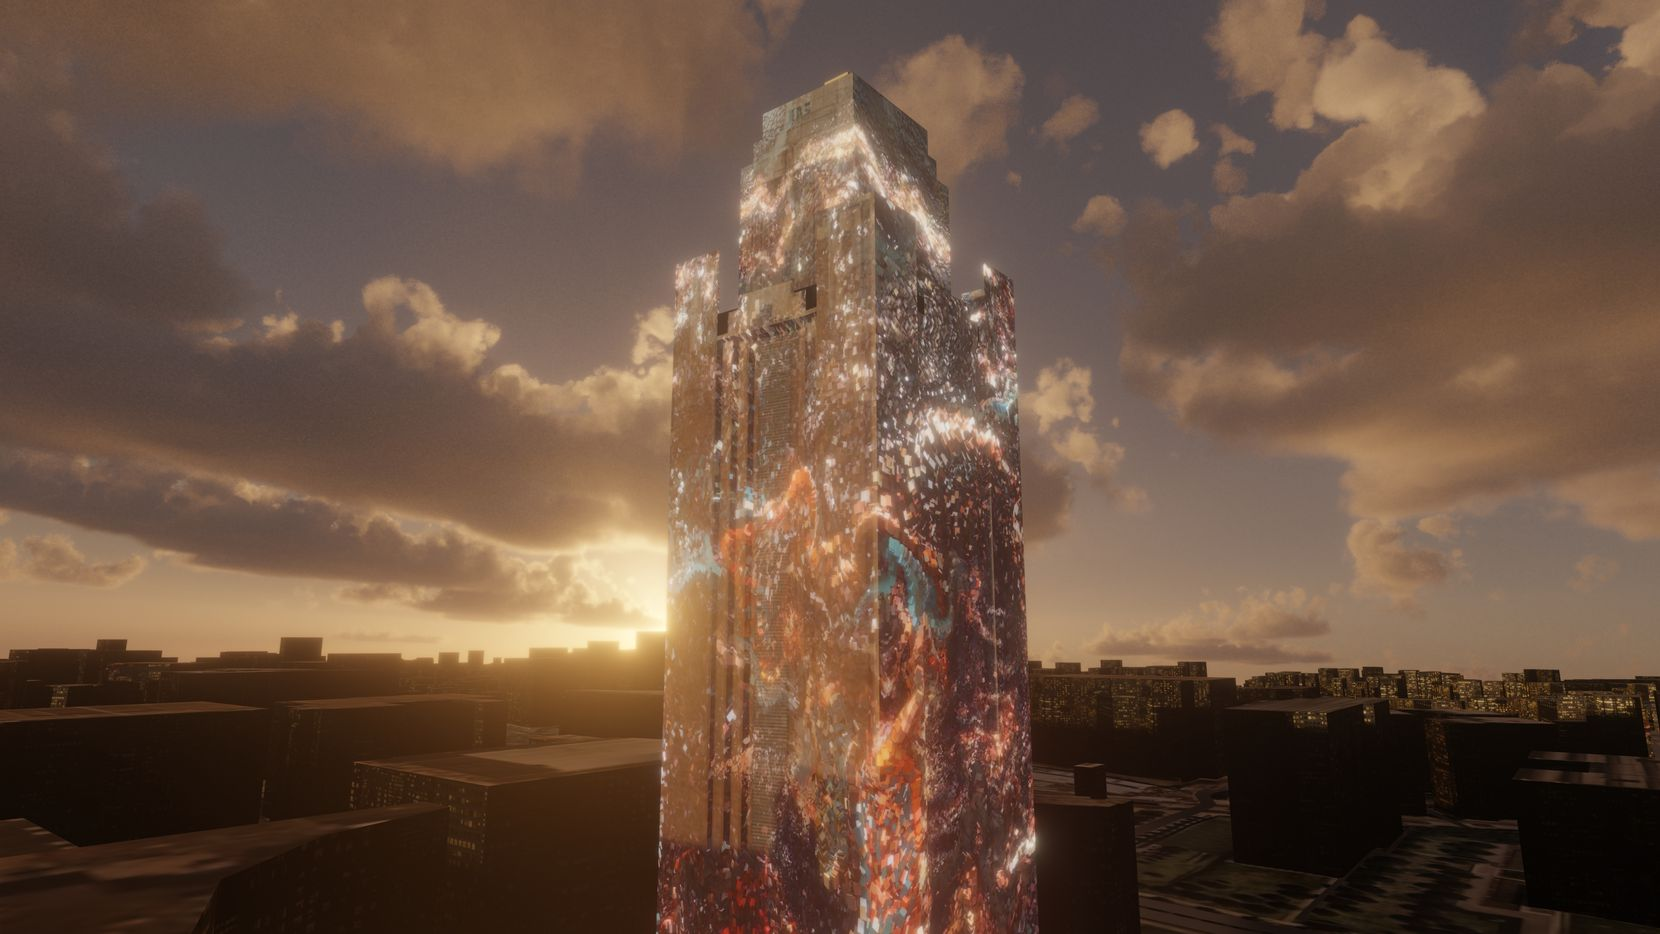 A render of Pioneer Tower Dreams, a projection by Refik Anadol created for New Stories: New Futures in Fort Worth. (Refik Anadol)